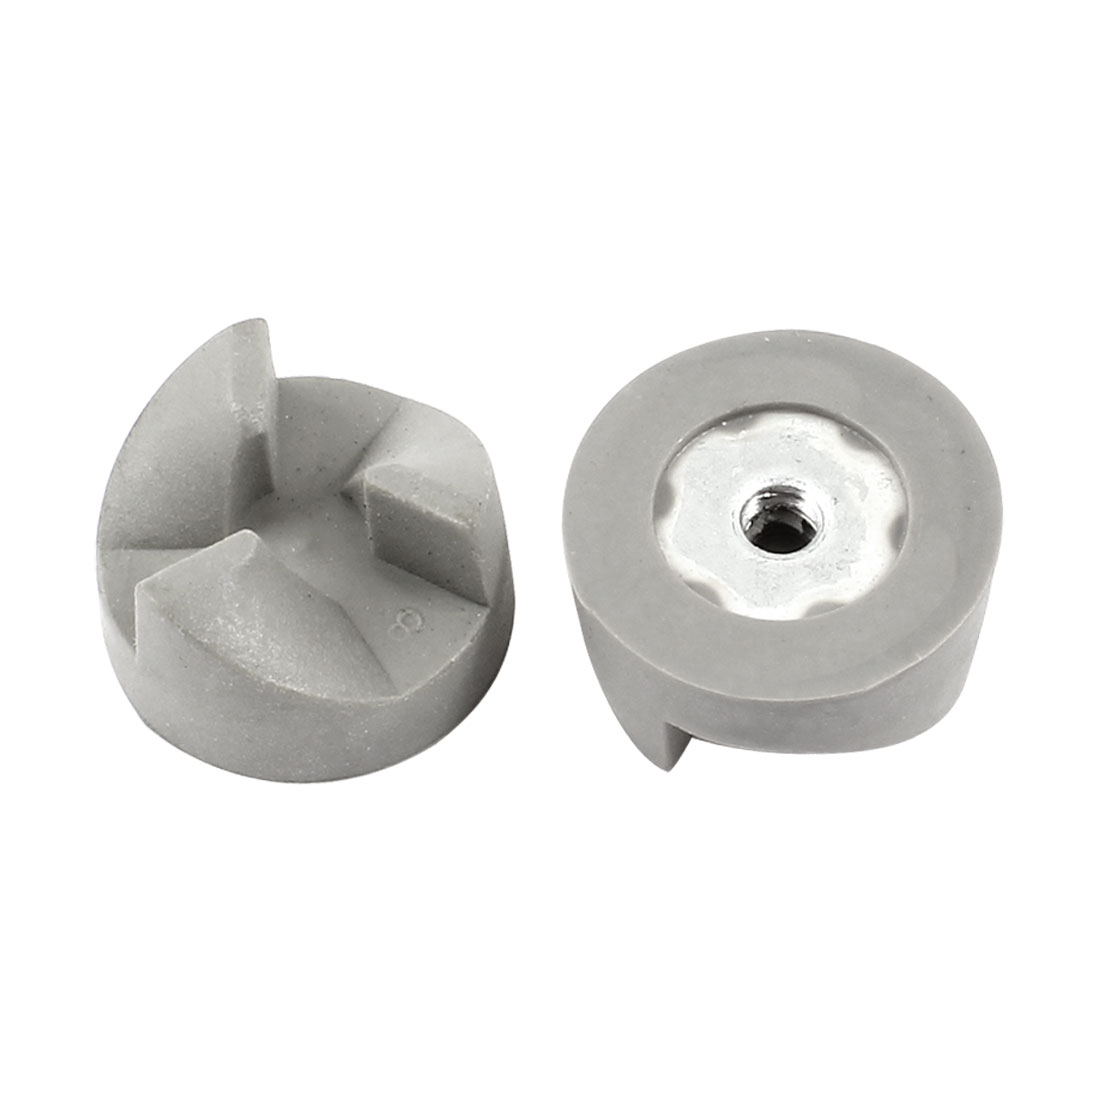 Home Kitchen Aid Blender Rubber Coupler Clutch 25mm Dia 3 Teeth Gray 2 Pcs